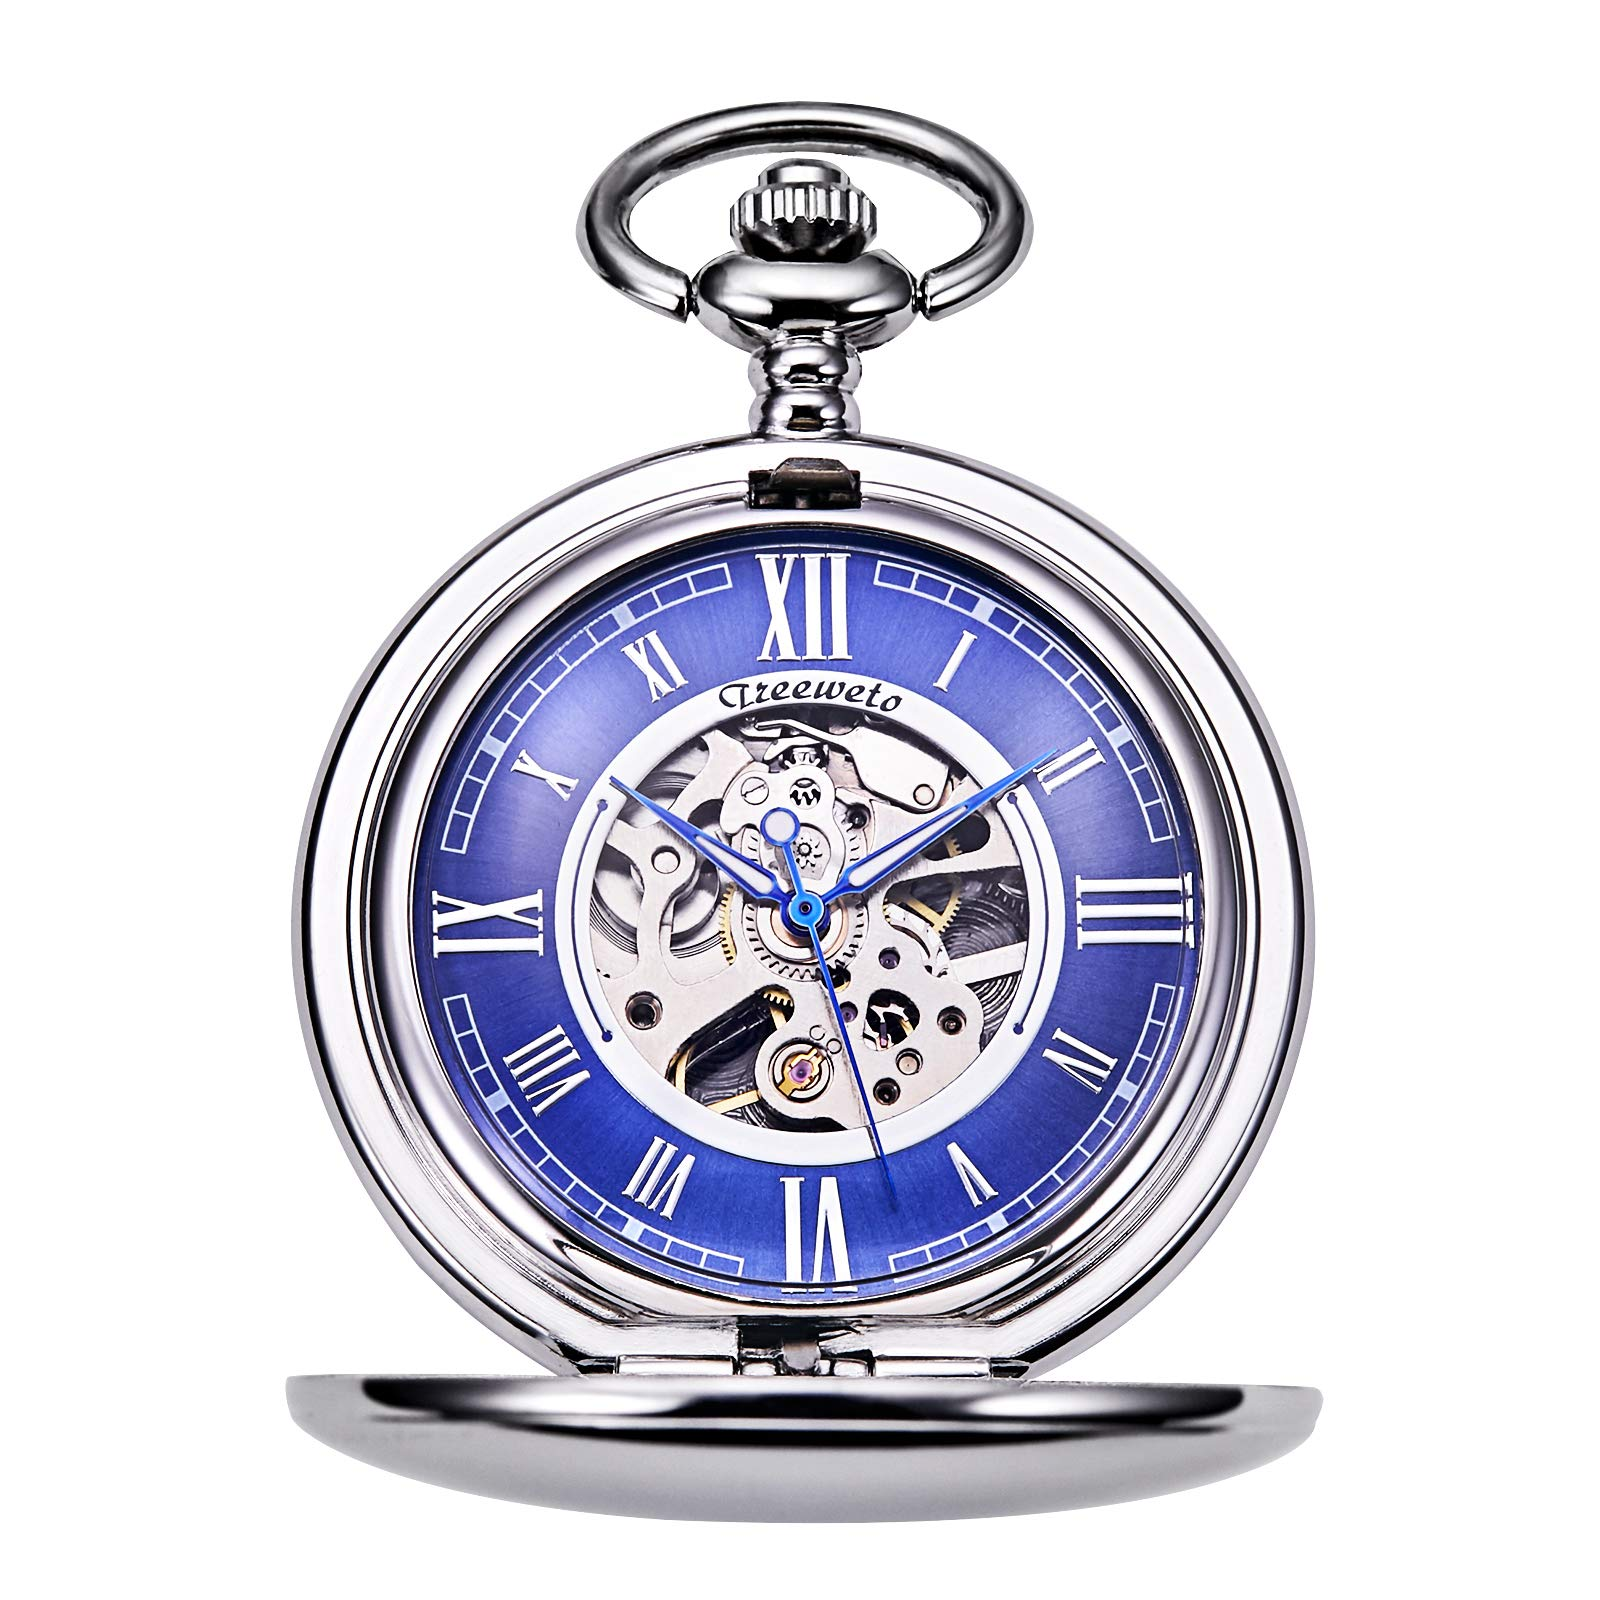 TREEWETO Pocket Watch - Smooth Double Case Series Skeleton Dial Delicate Mechanical Movement with Chain, Silver by TREEWETO